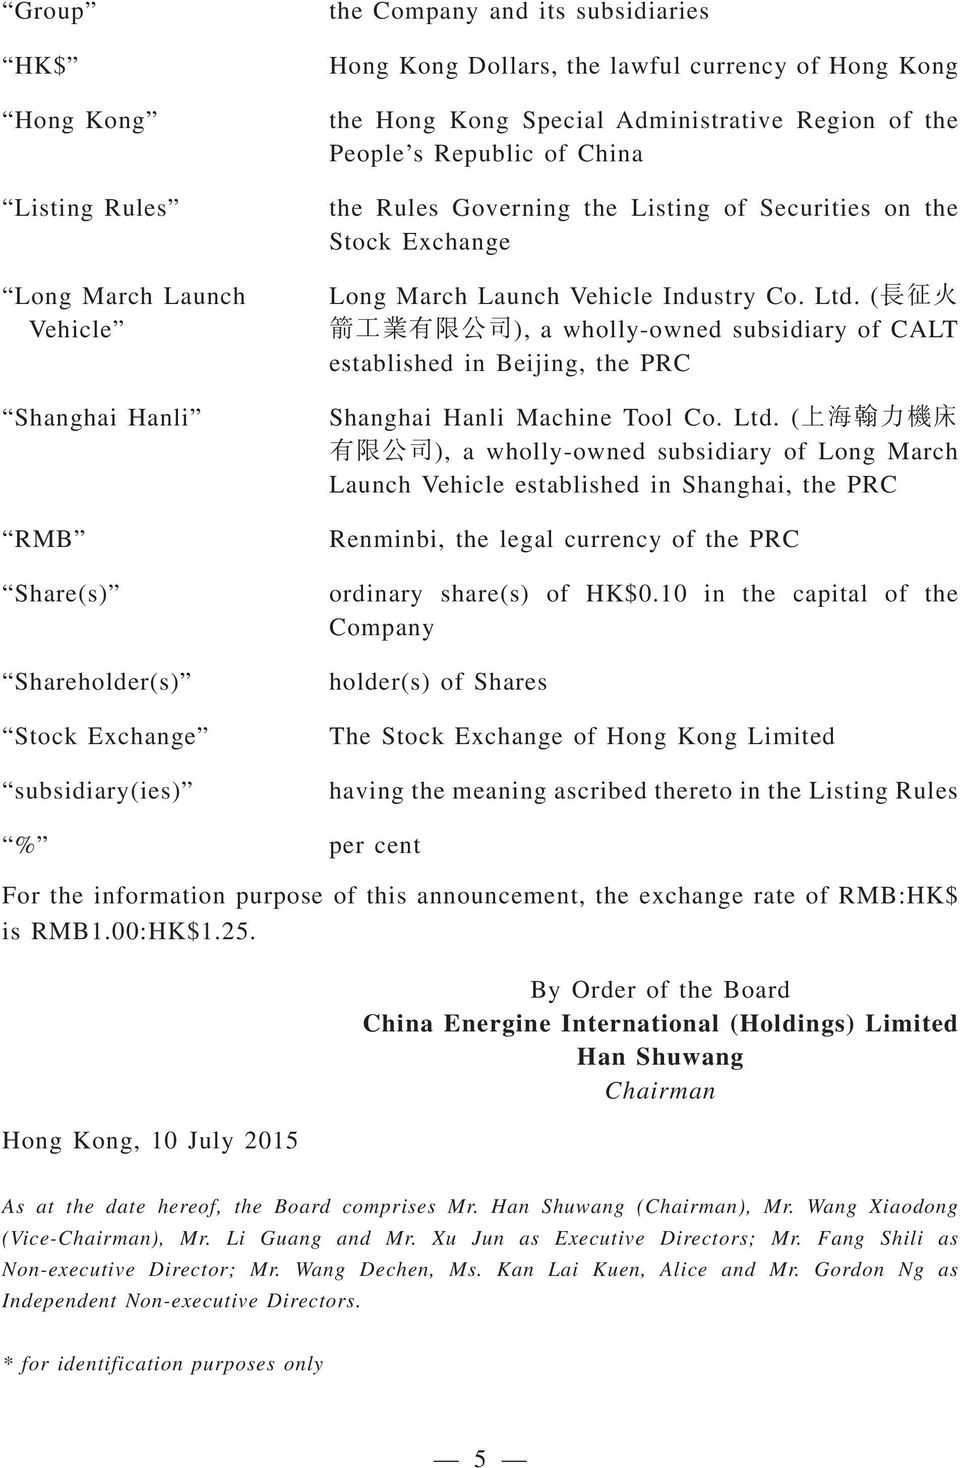 Industry Co. Ltd. ( ), a wholly-owned subsidiary of CALT established in Beijing, the PRC Shanghai Hanli Machine Tool Co. Ltd. ( ), a wholly-owned subsidiary of Long March Launch Vehicle established in Shanghai, the PRC Renminbi, the legal currency of the PRC ordinary share(s) of HK$0.